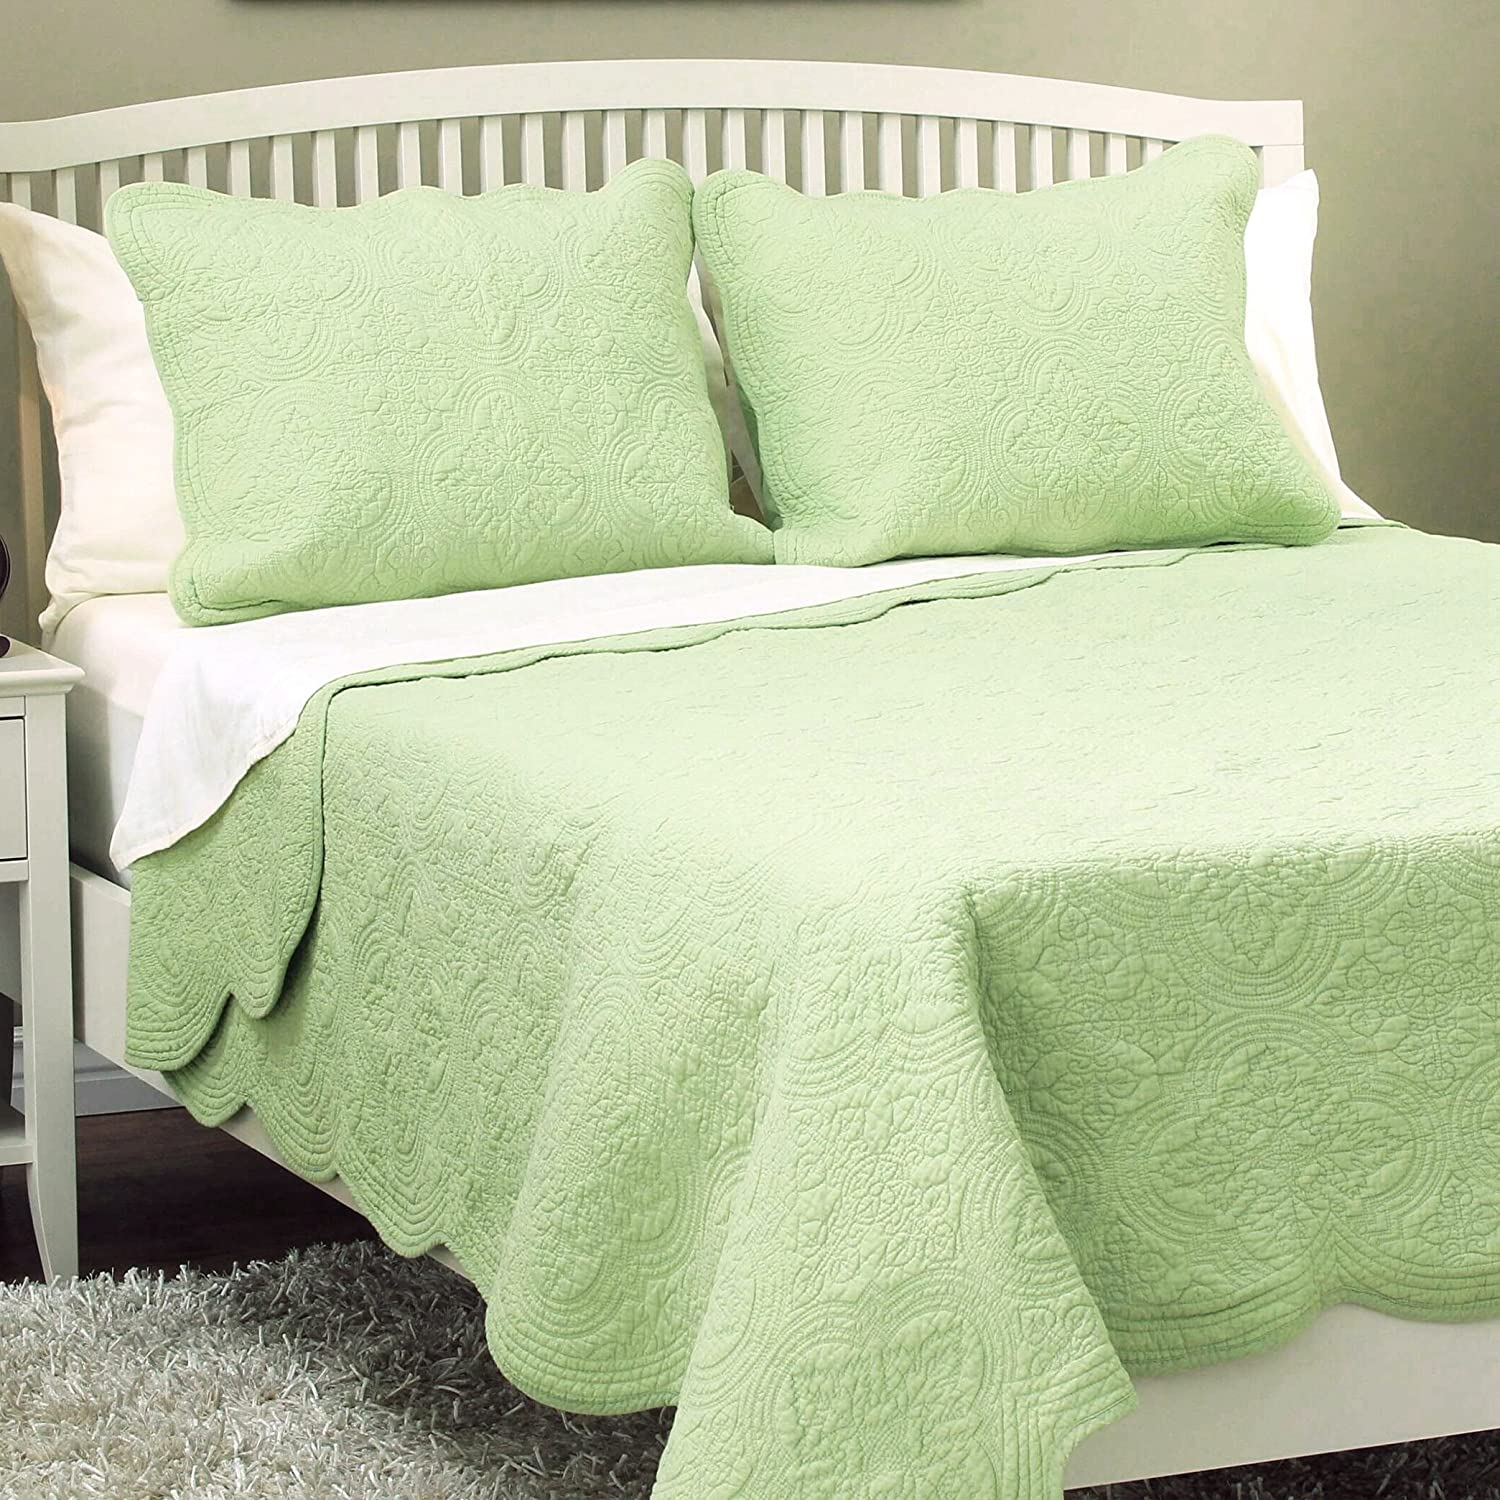 Cozy Line Home Fashions Victorian Medallion Solid Green Matelasse Embossed 100 % Cotton Bedding Quilt Set,Coverlet,for Bedroom/Guest Room (Blantyre - Green, Twin - 2 Piece)